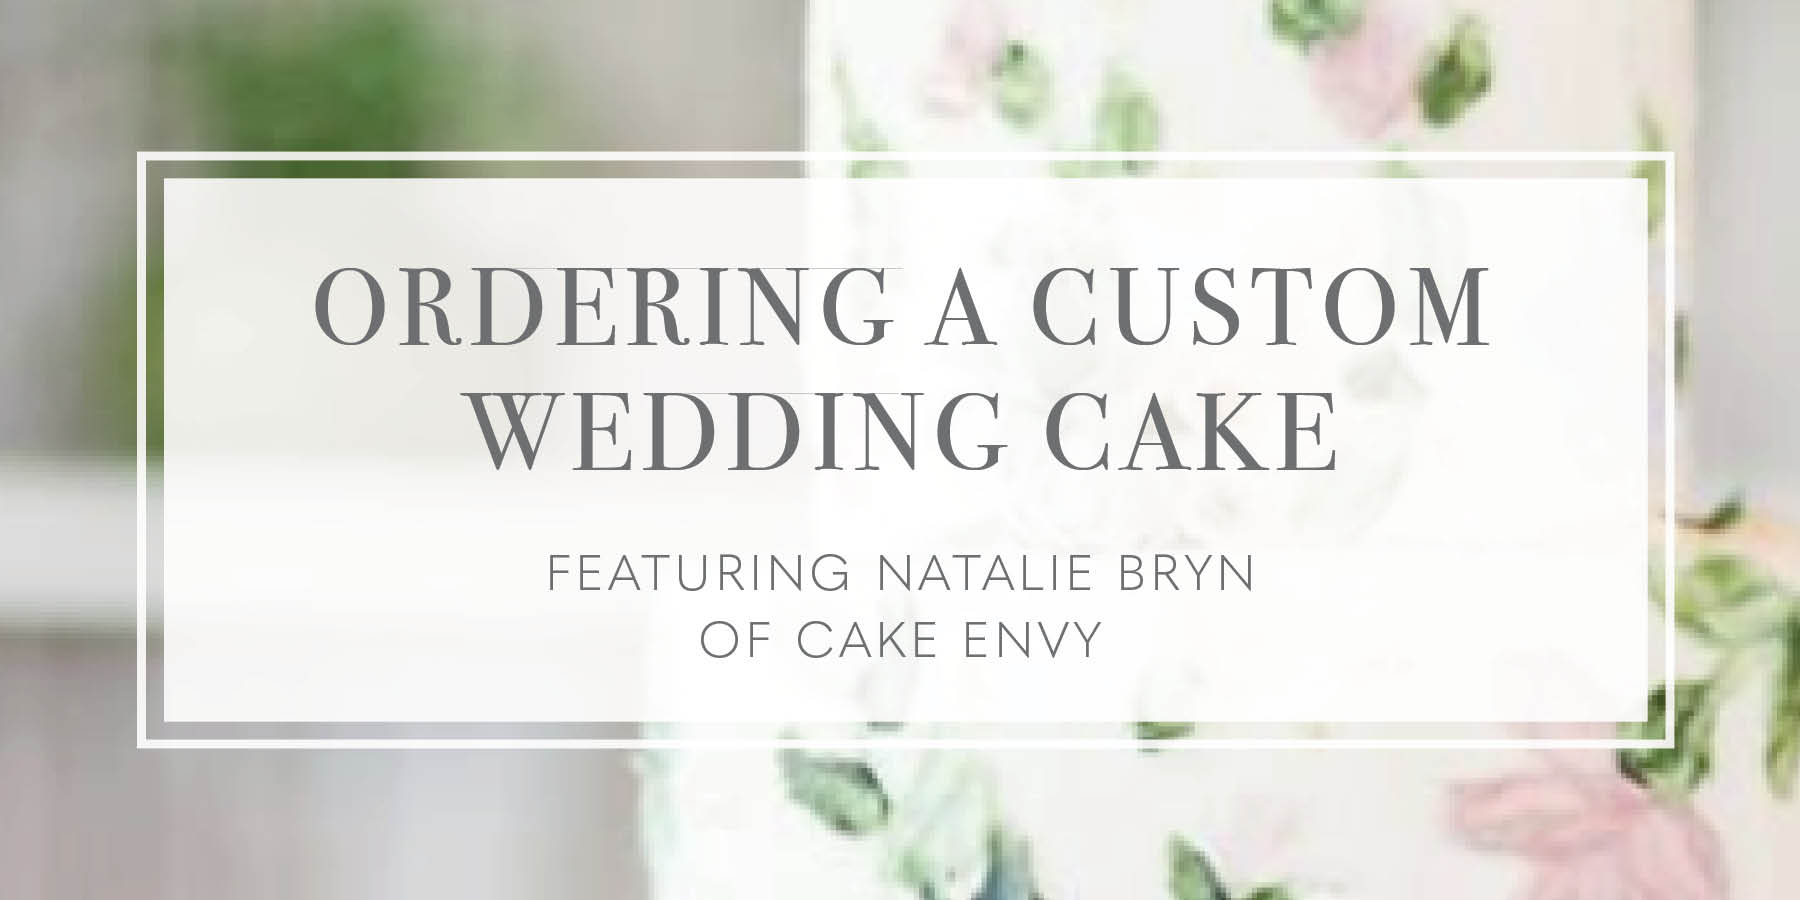 How to Order a Custom Wedding Cake